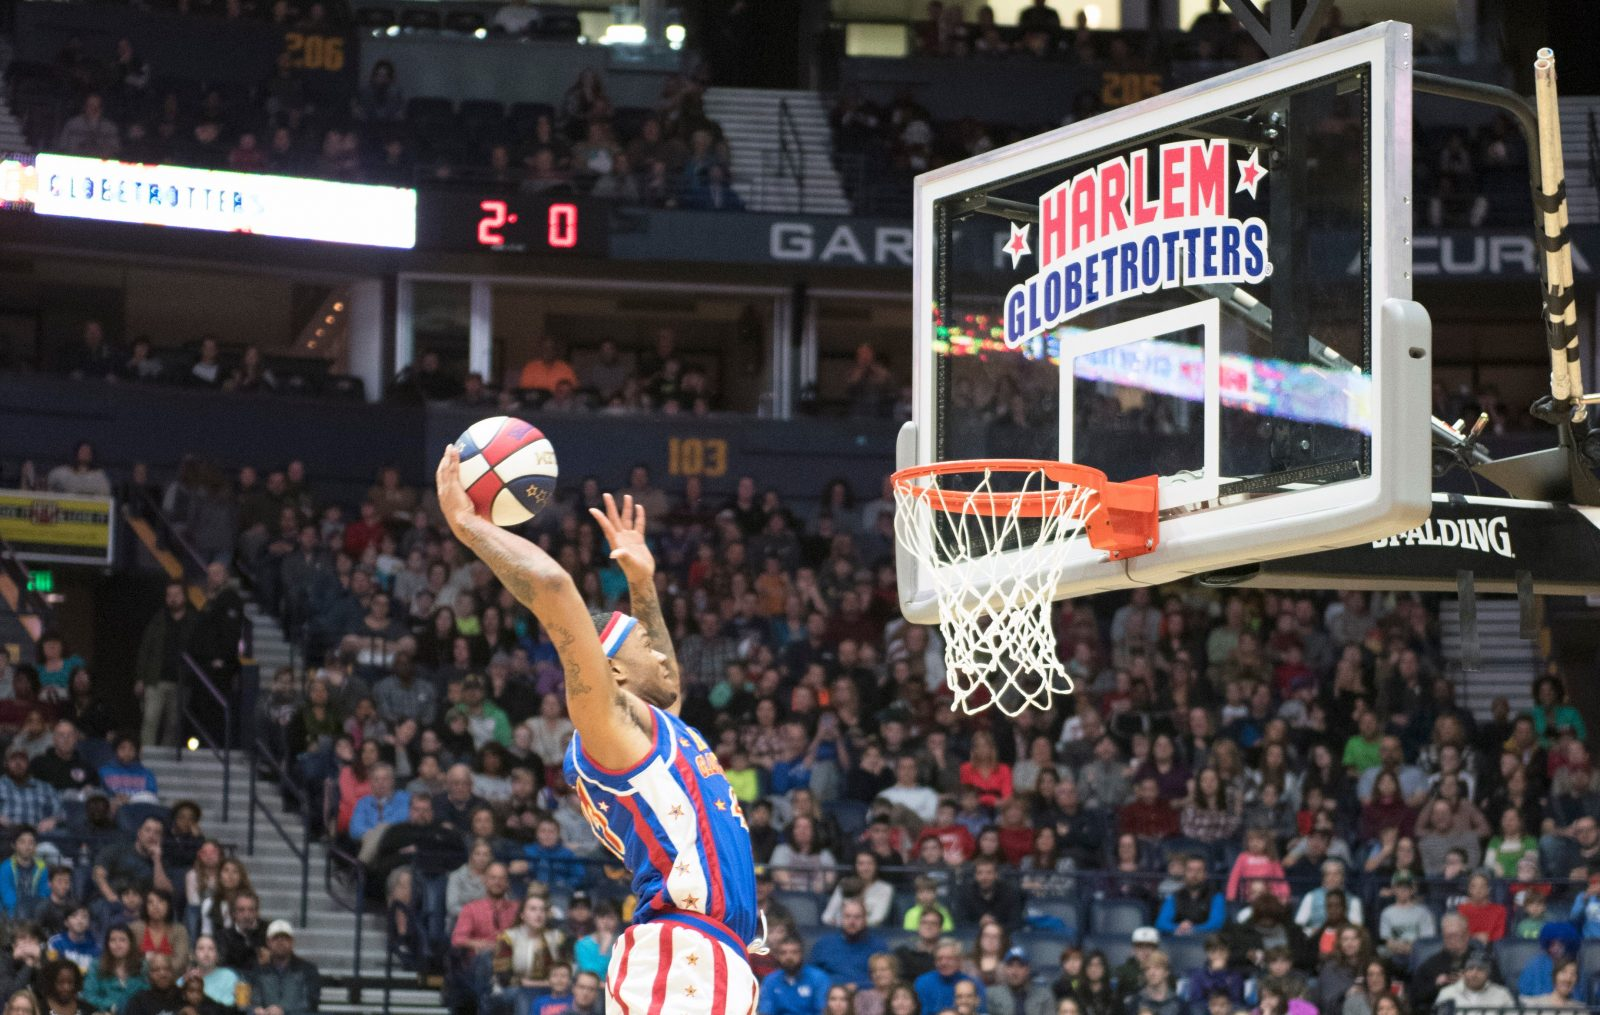 The Original Harlem Globetrotters are globally known for their amazing feats on the basketball court